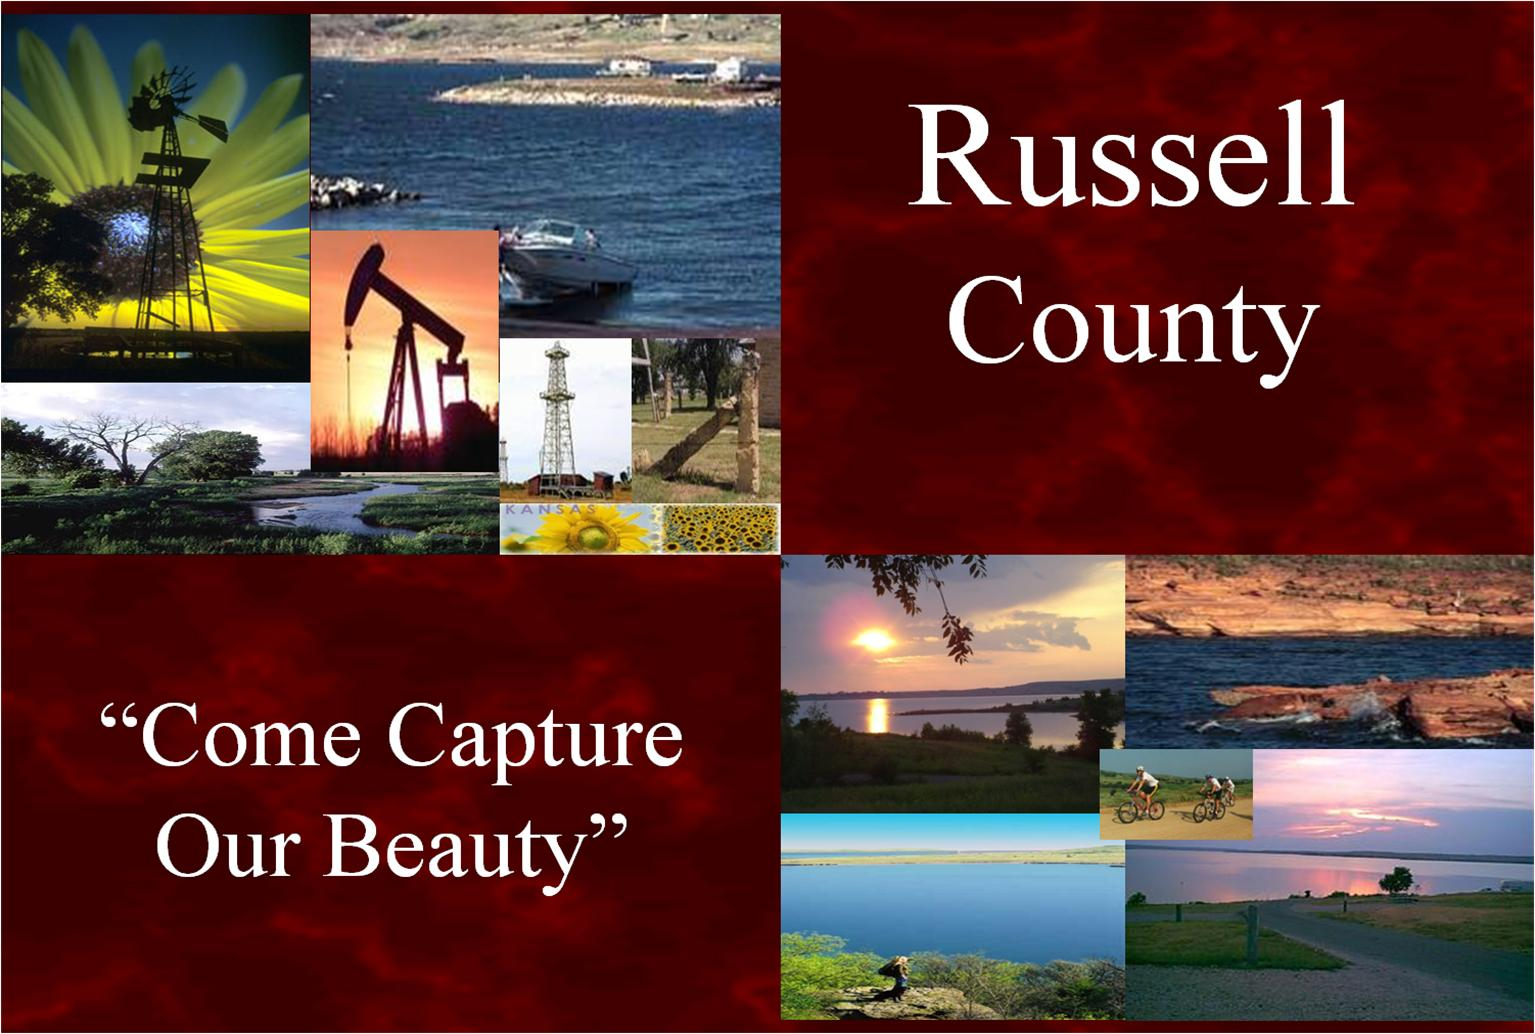 Russell County Kansas Property Tax